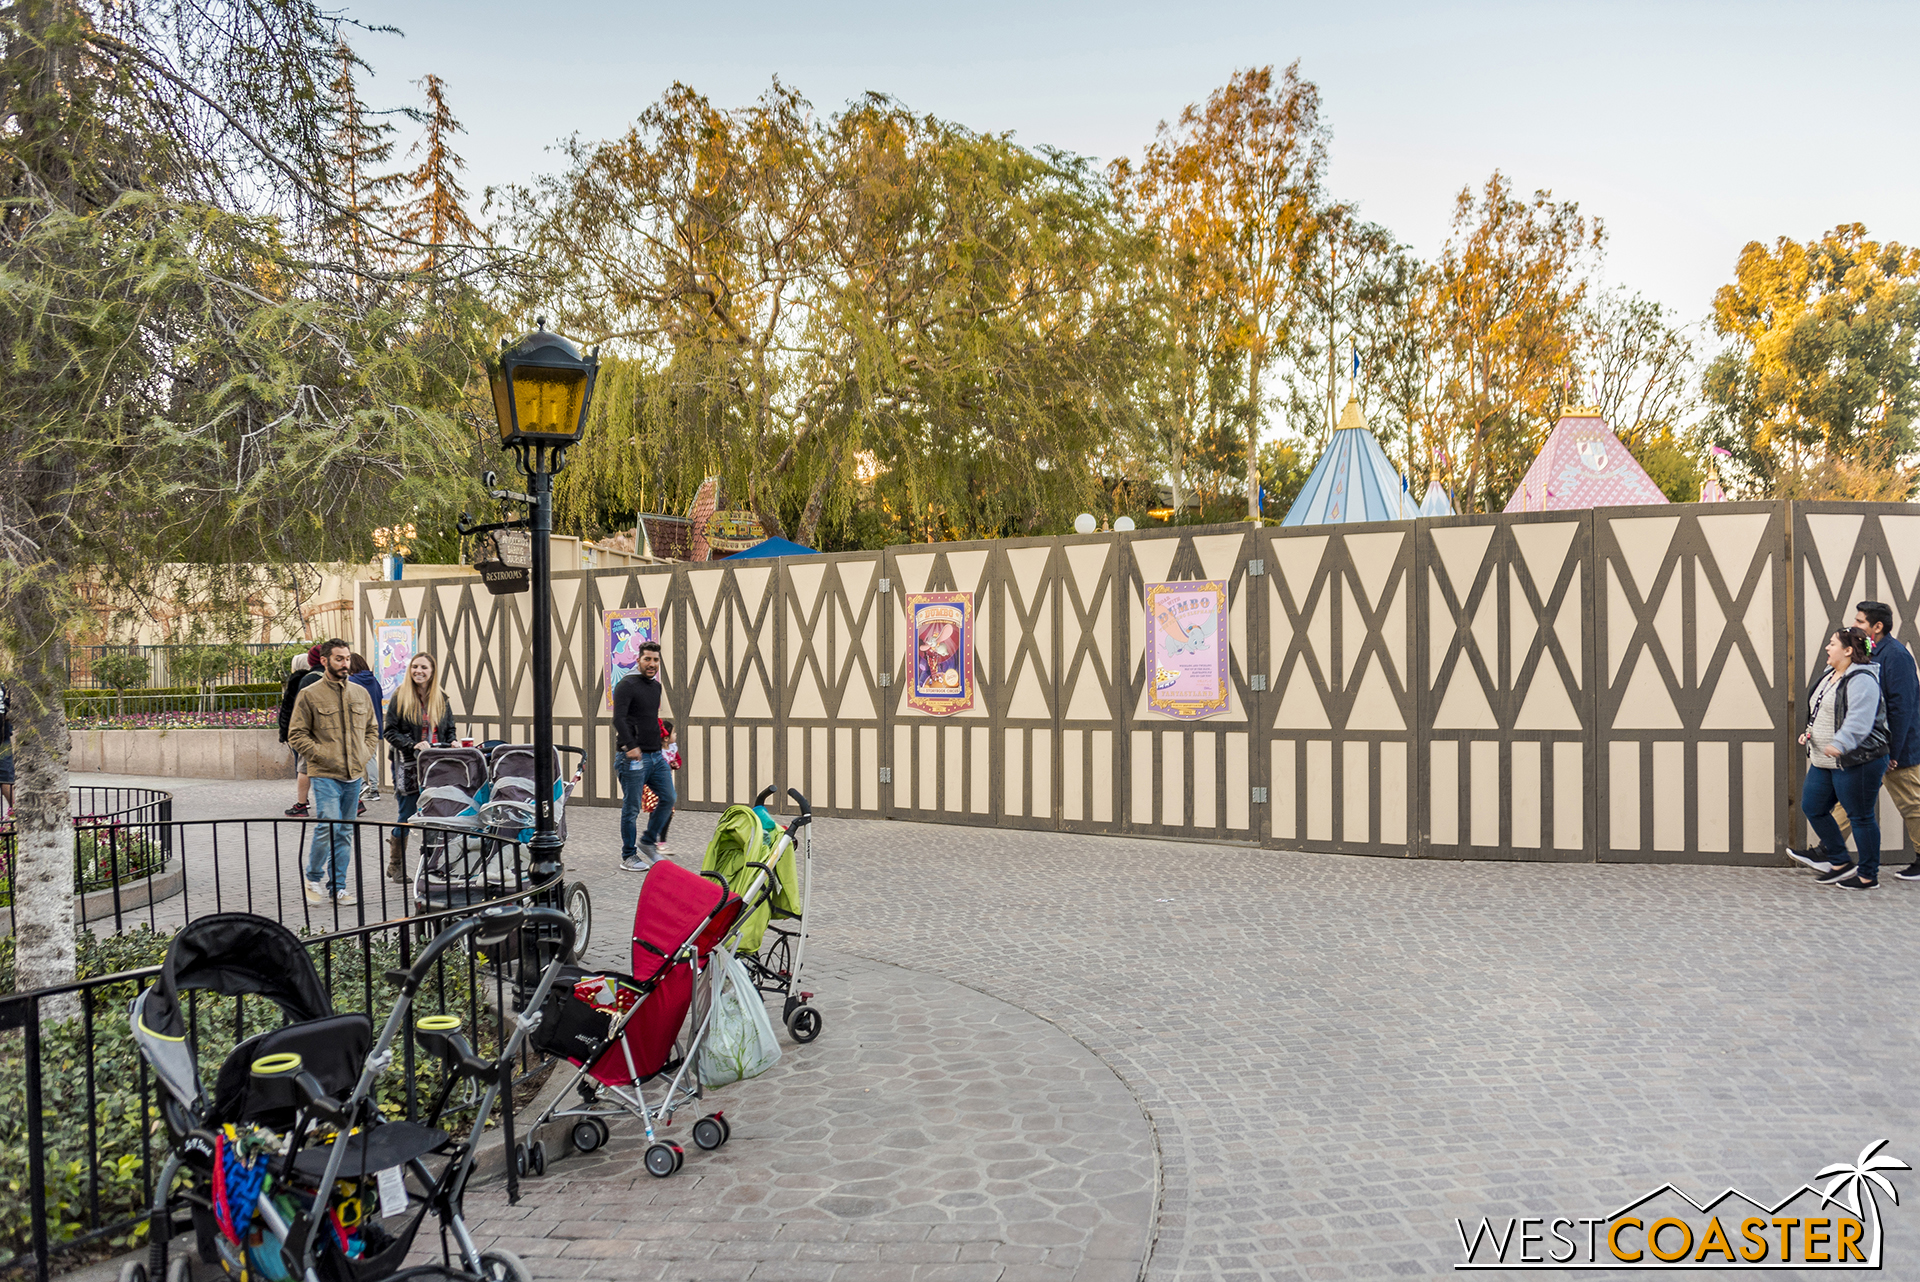 They're changing up the queue and building a shade canopy for the ride.